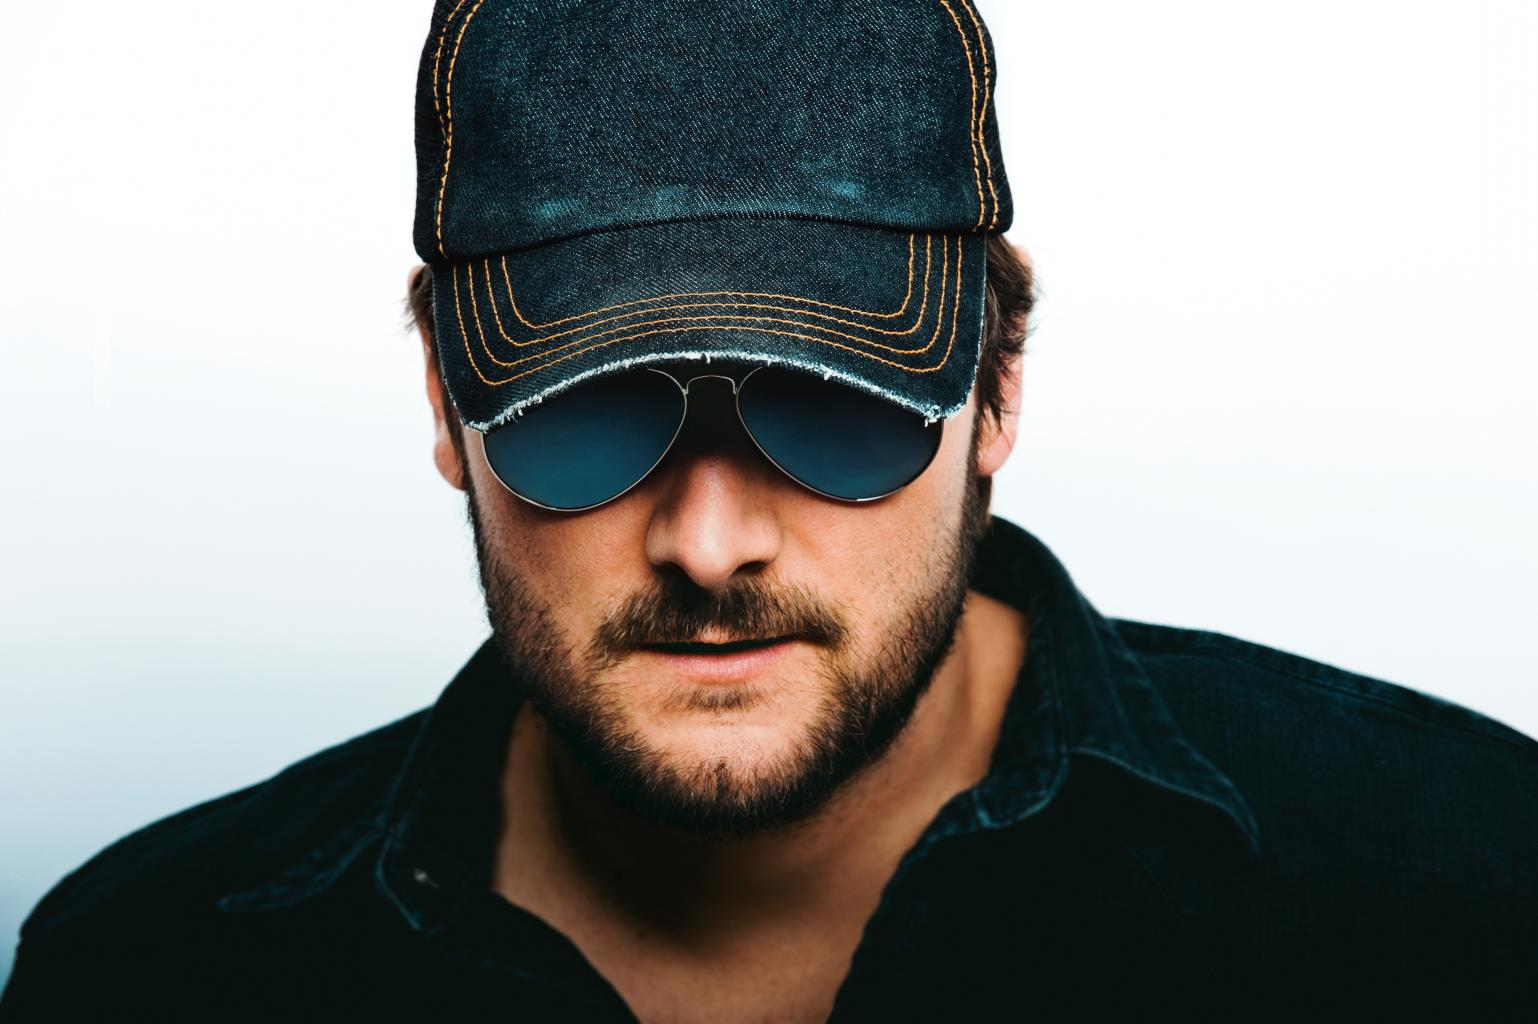 What Do Eric Church And Jurassic World Have In Common